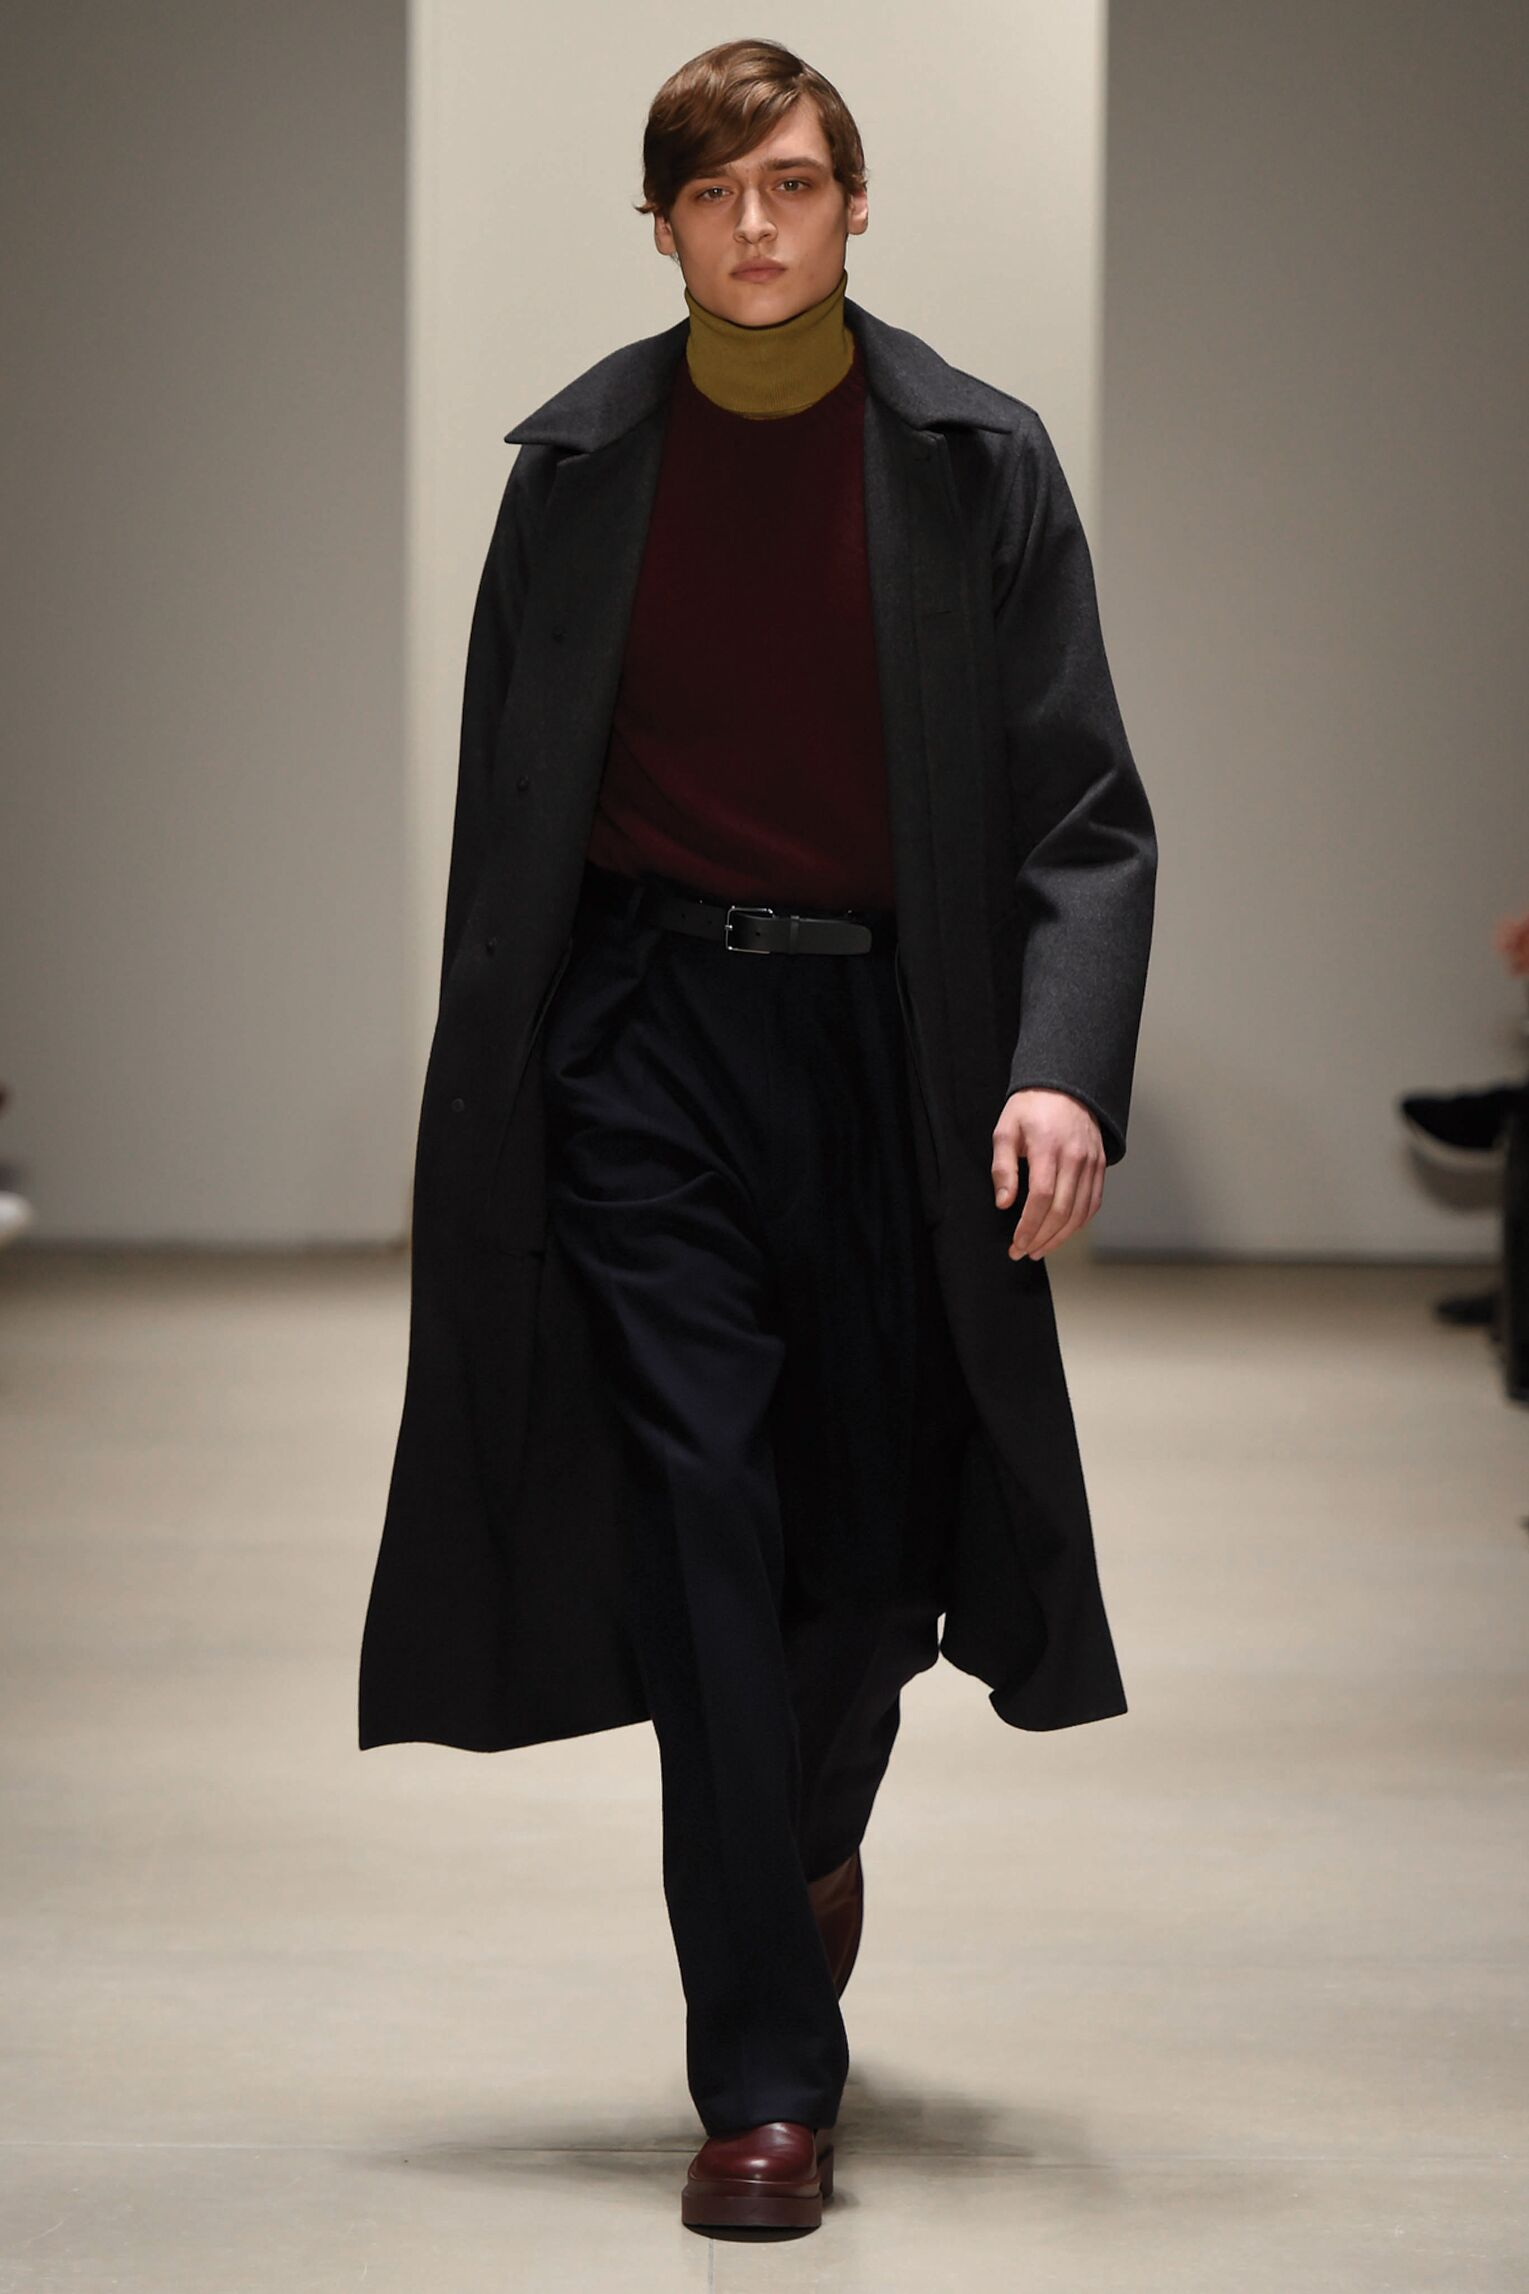 JIL SANDER FALL WINTER 2015-16 MEN'S COLLECTION | The ...